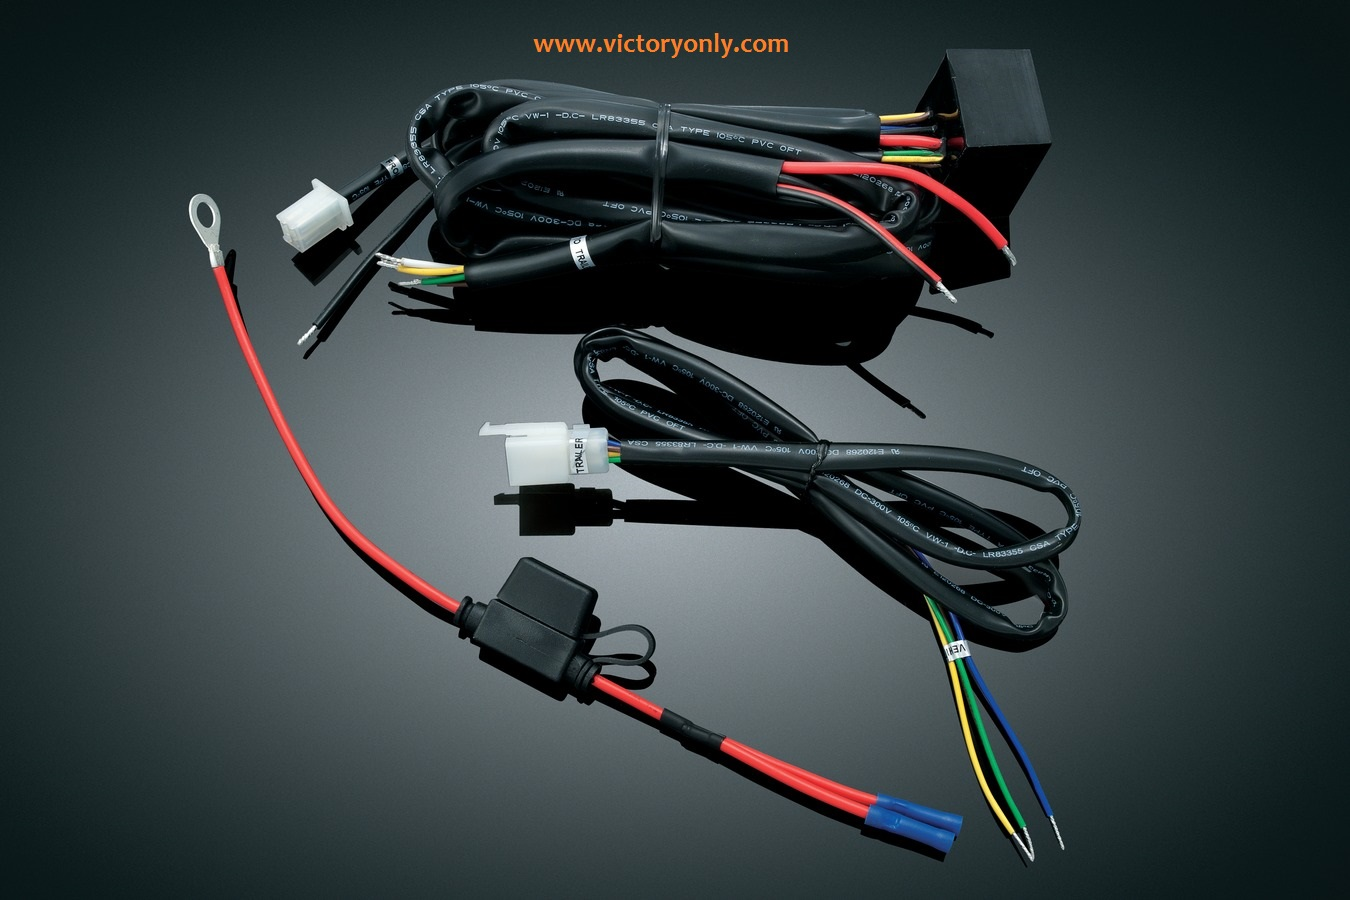 16997_kur_7671_tt_u_13_1350x900_RGB_72DPI trailer wiring harnesses for victory motorcycle cross country trailer wiring diagram at panicattacktreatment.co